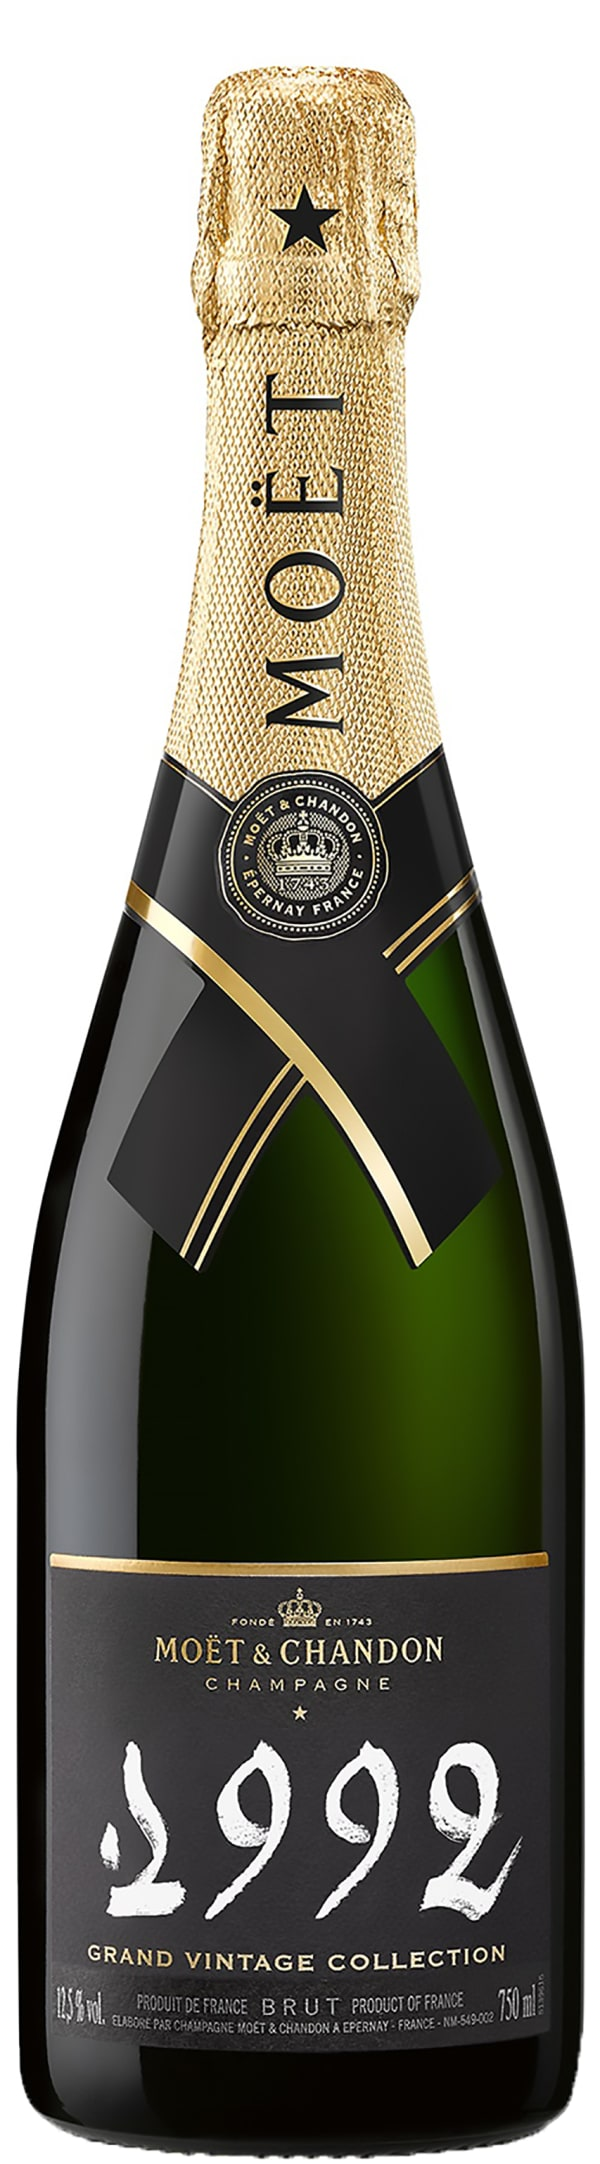 Moët & Chandon Grand Vintage Collection Champagne Brut 1992